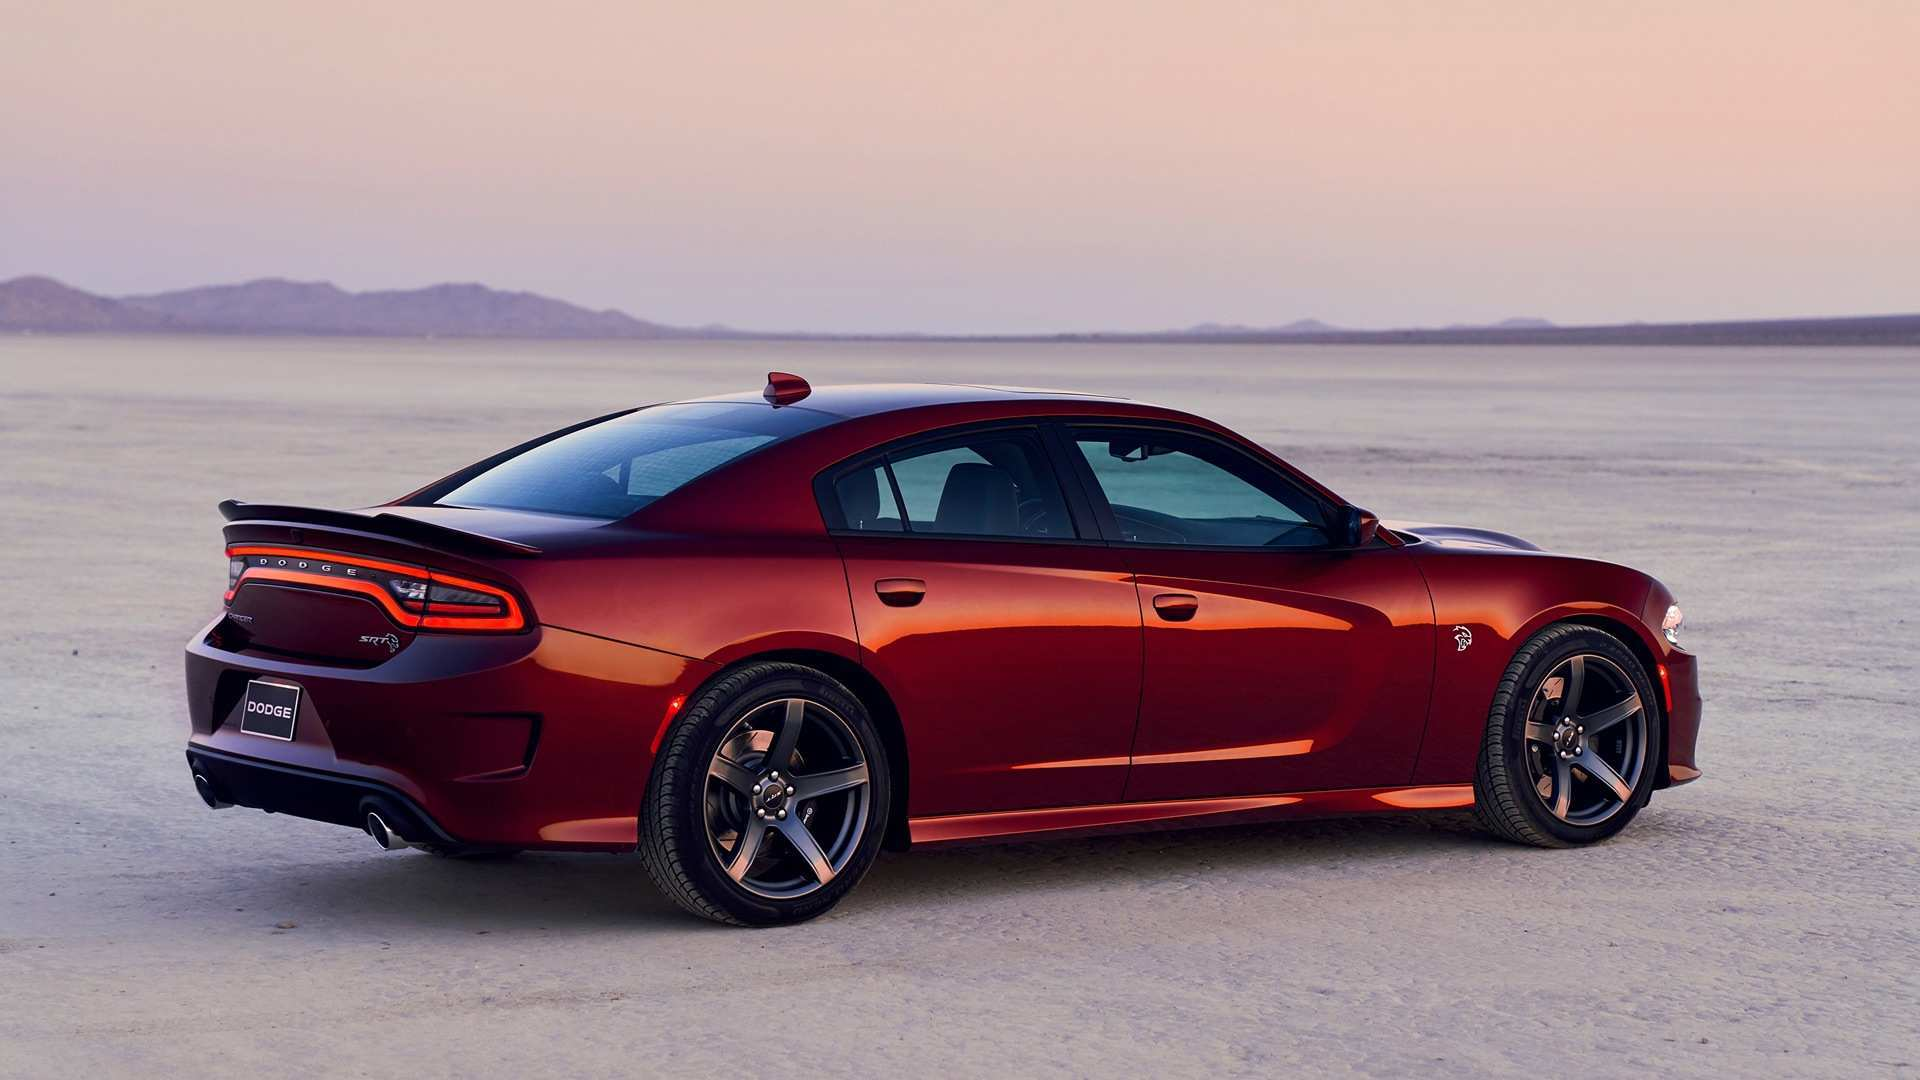 44 All New 2020 Dodge Charger SRT8 Photos by 2020 Dodge Charger SRT8